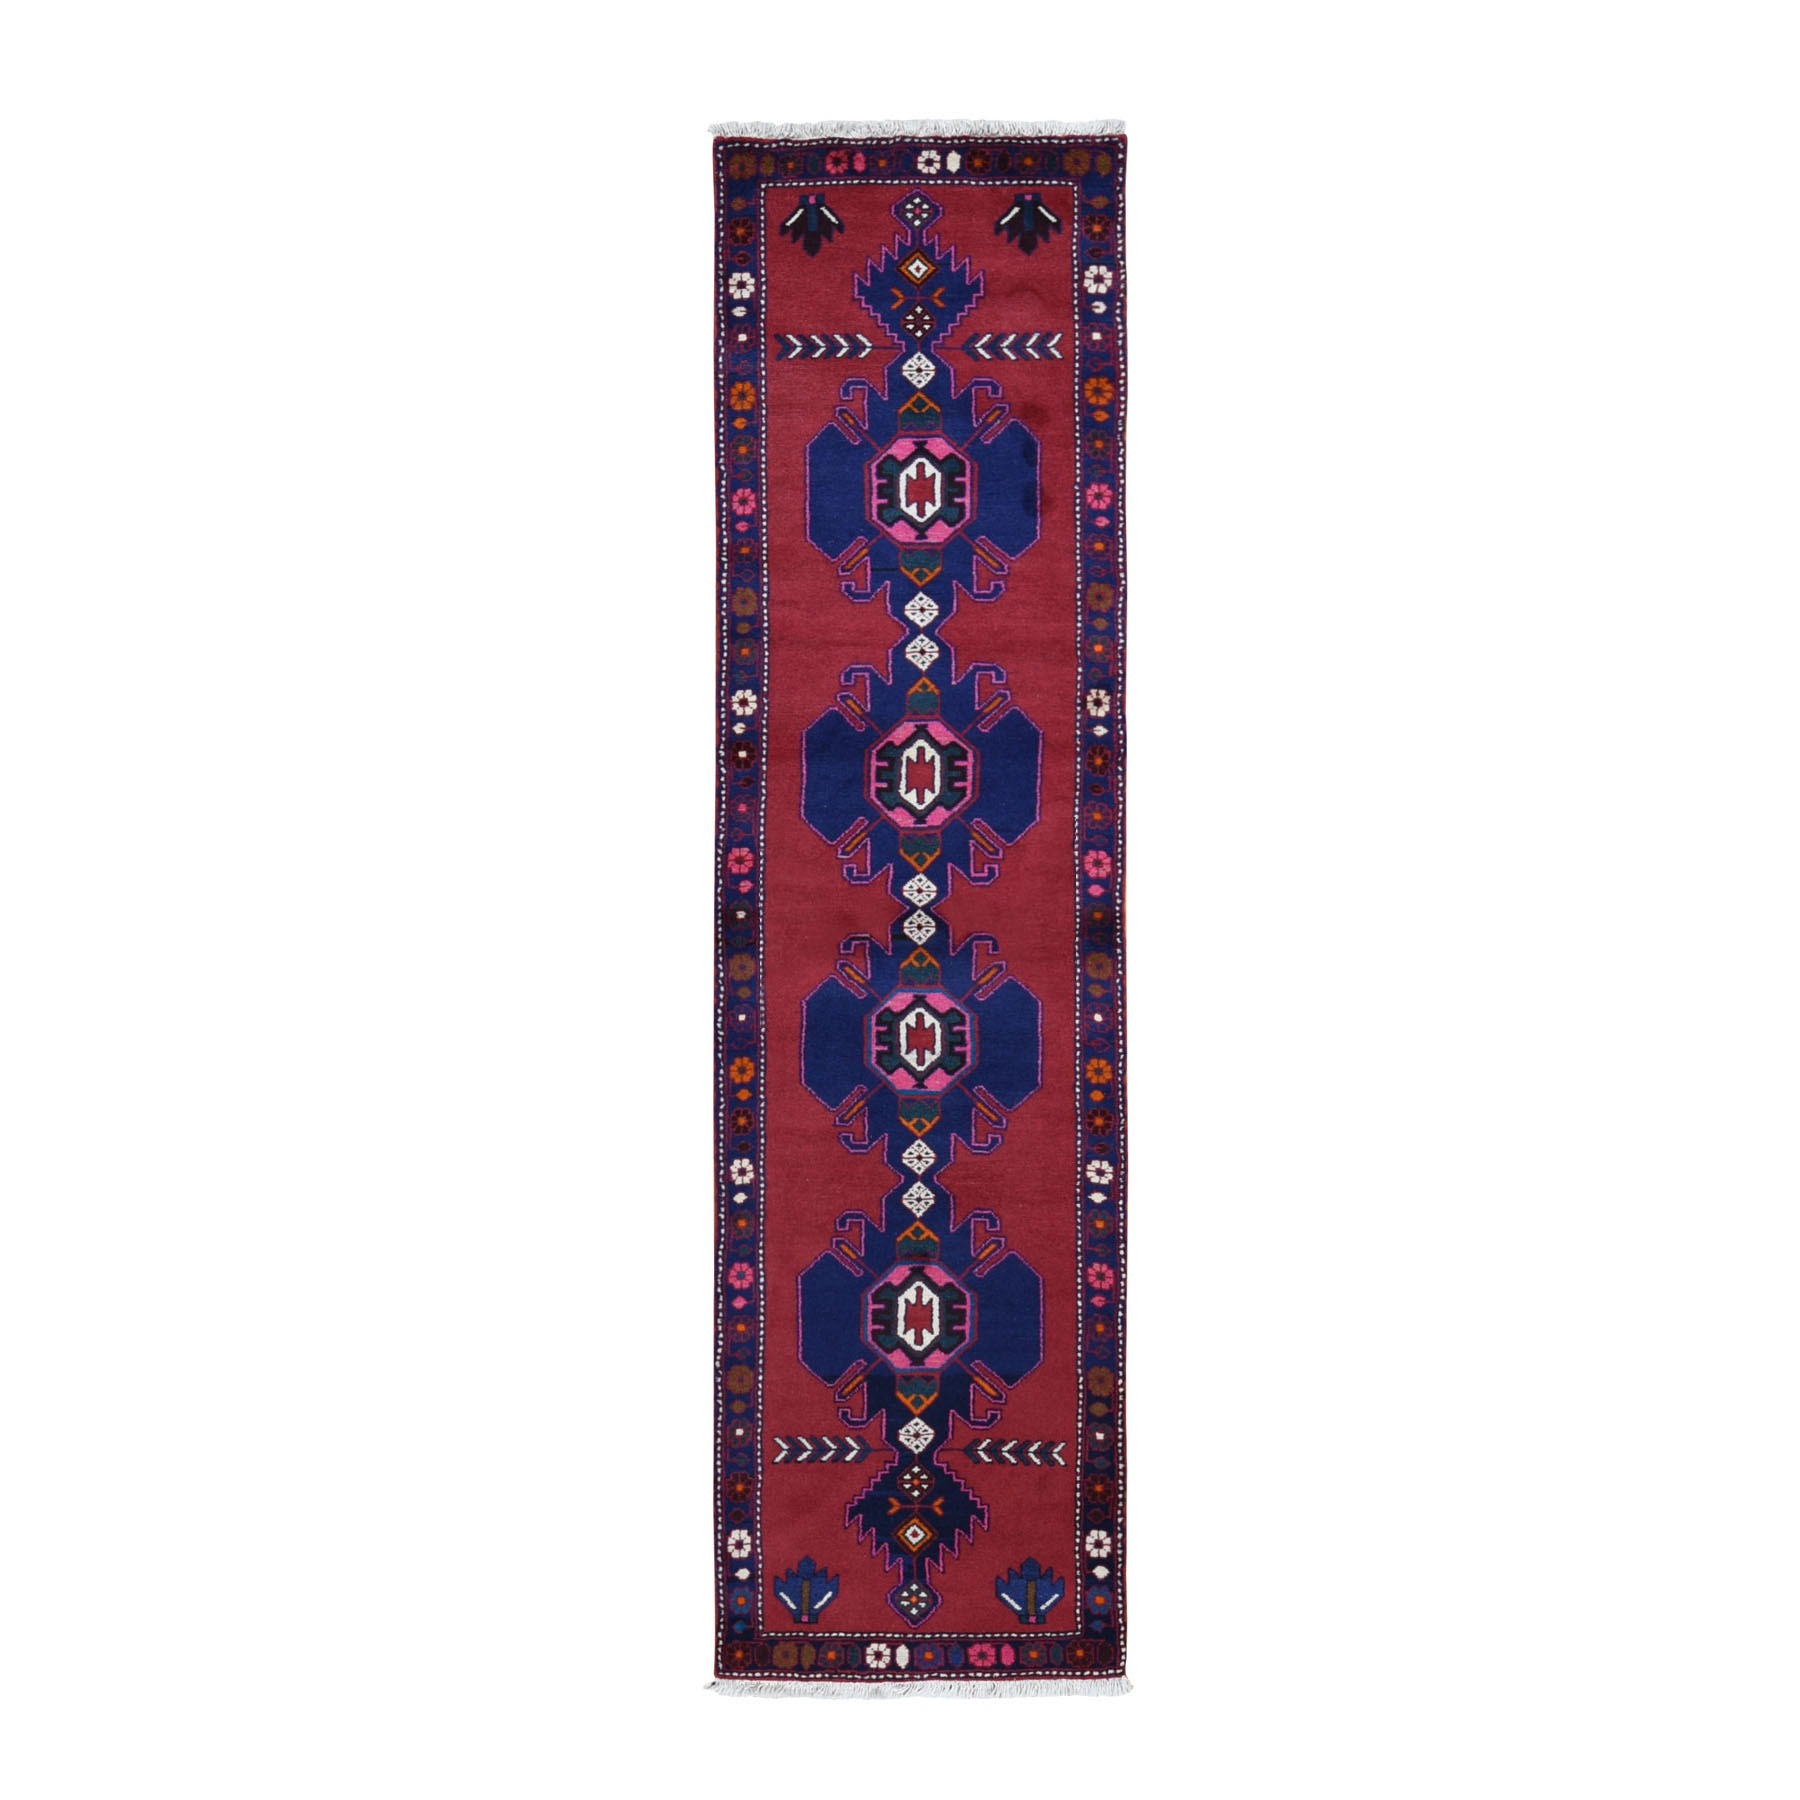 "2'6""x9'6"" Red New Persian Hamadan Pure Wool Repetitive Medallion Design Open Field Oriental Runner Rug"